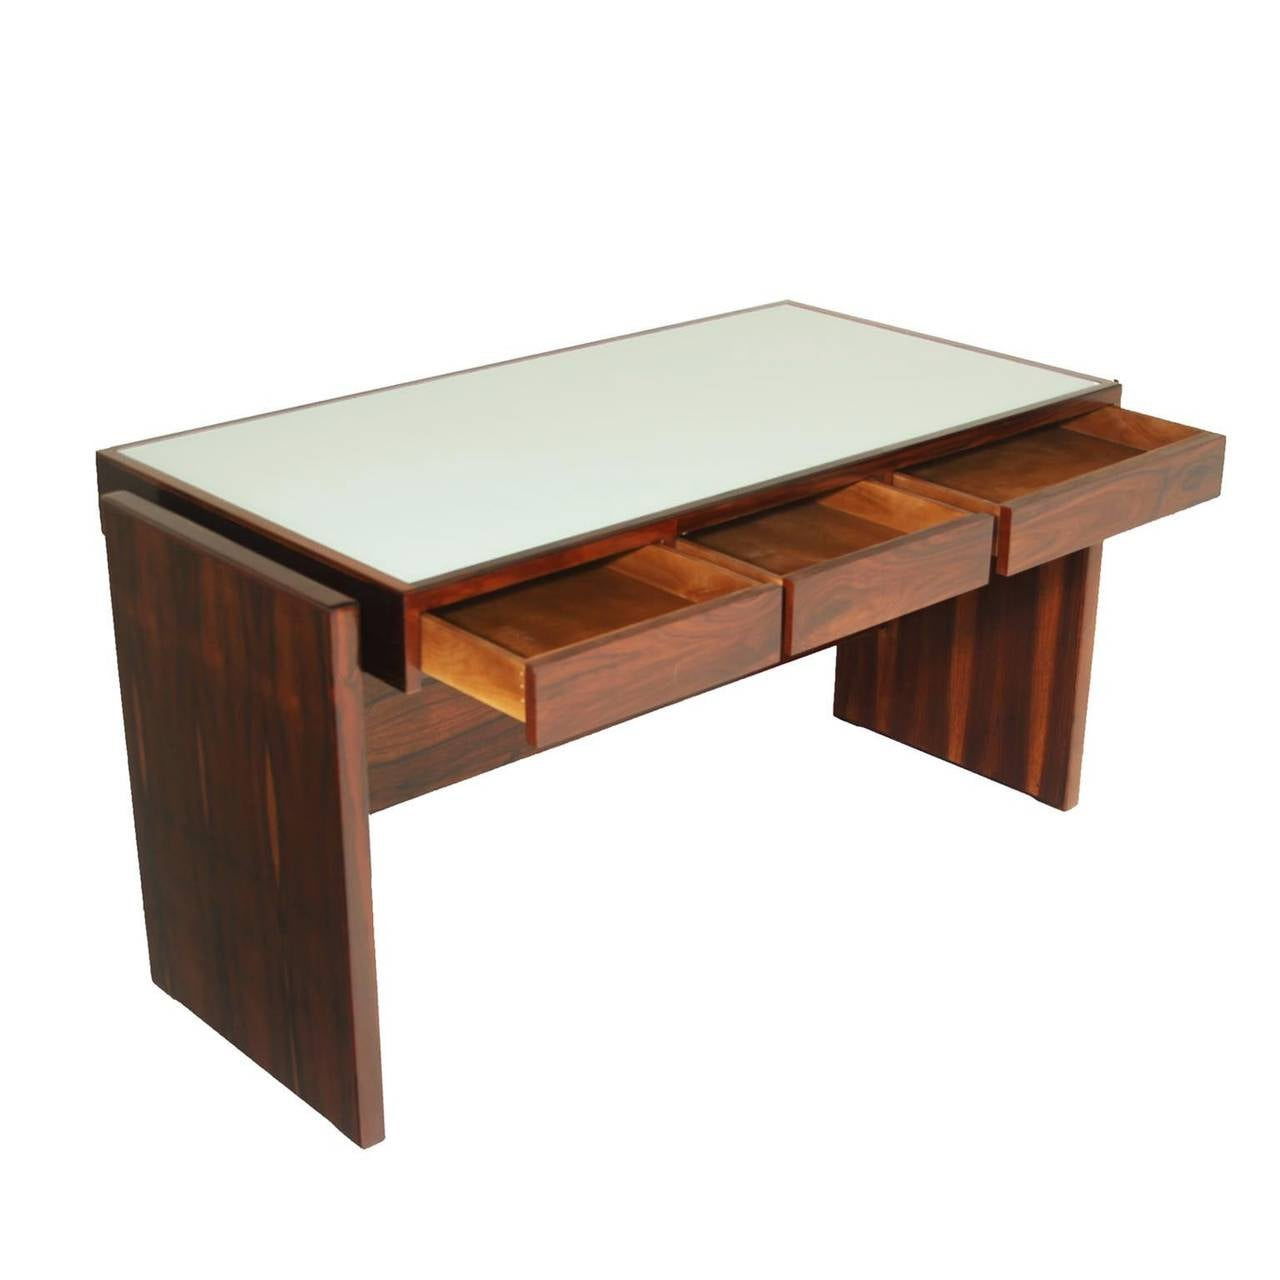 Rosewood desk designed by Brazil's Joaquim Tenreiro with a white reverse painted glass top and three drawers. This desk came from the Bloch, Editores headquarters, a building designed by Oscar Niemeyer and with interiors furnished by Sergio